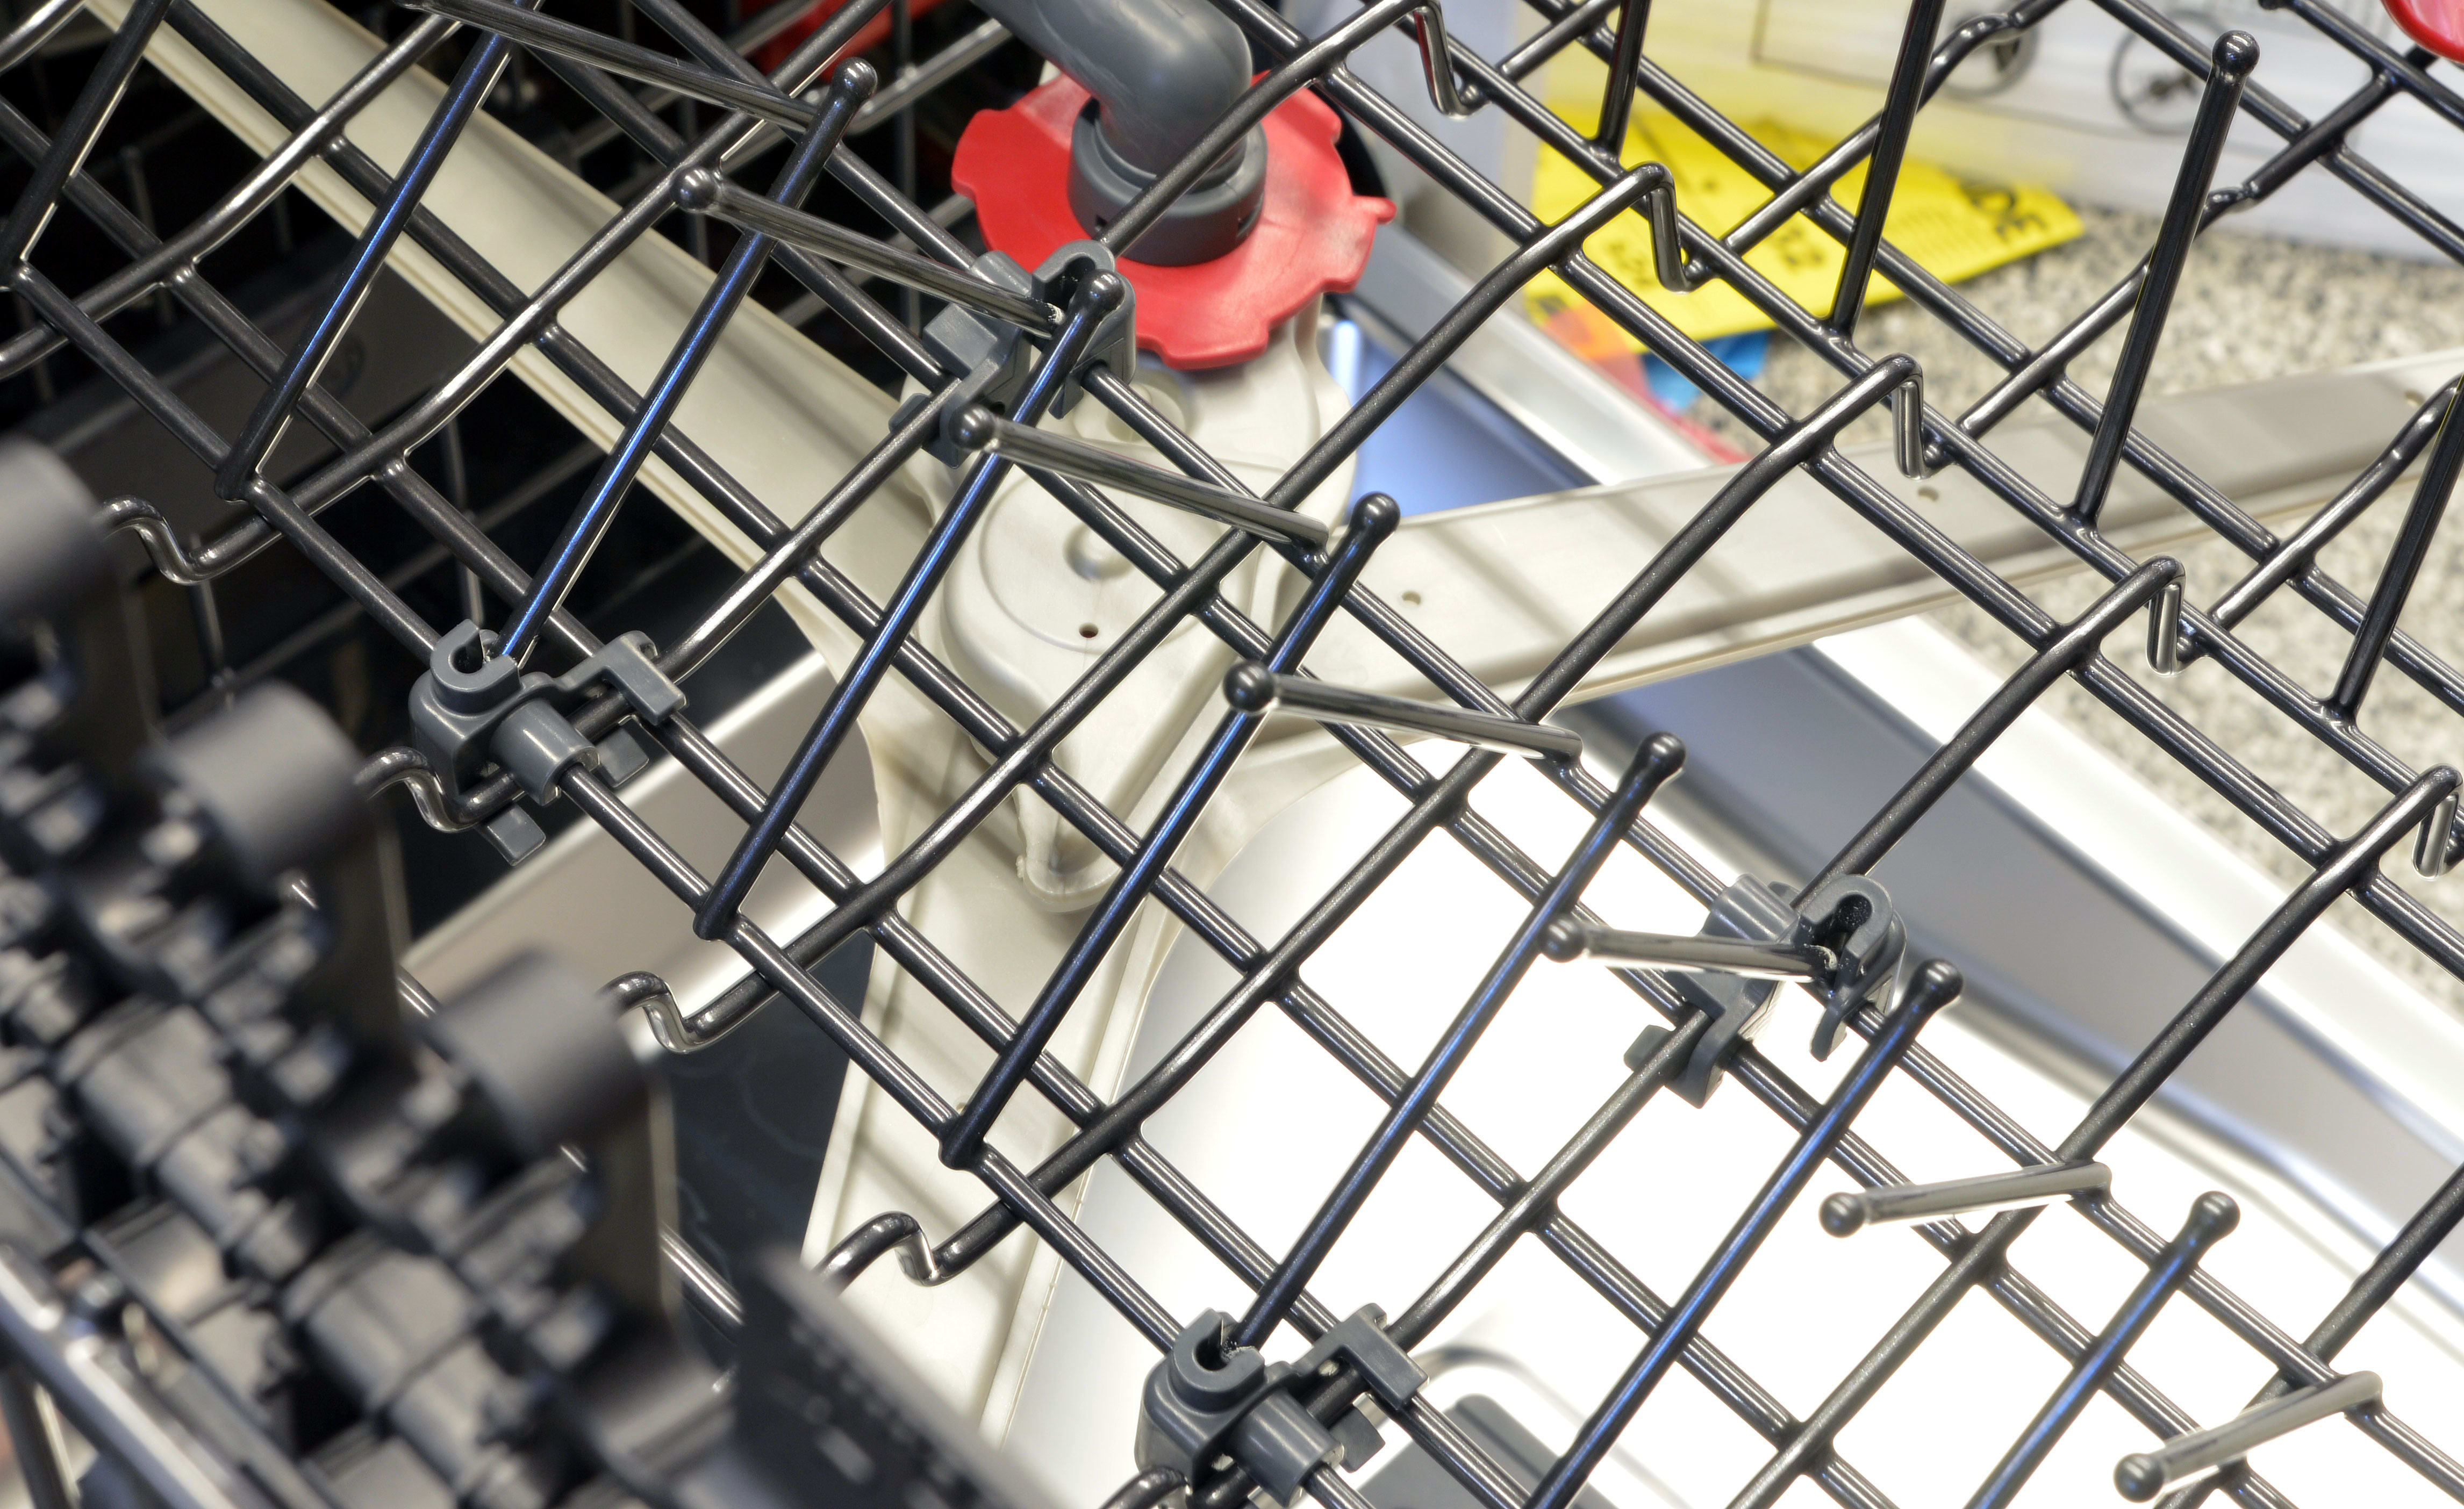 Two of the four rows of tines on the upper rack can fold down to accommodate larger items.